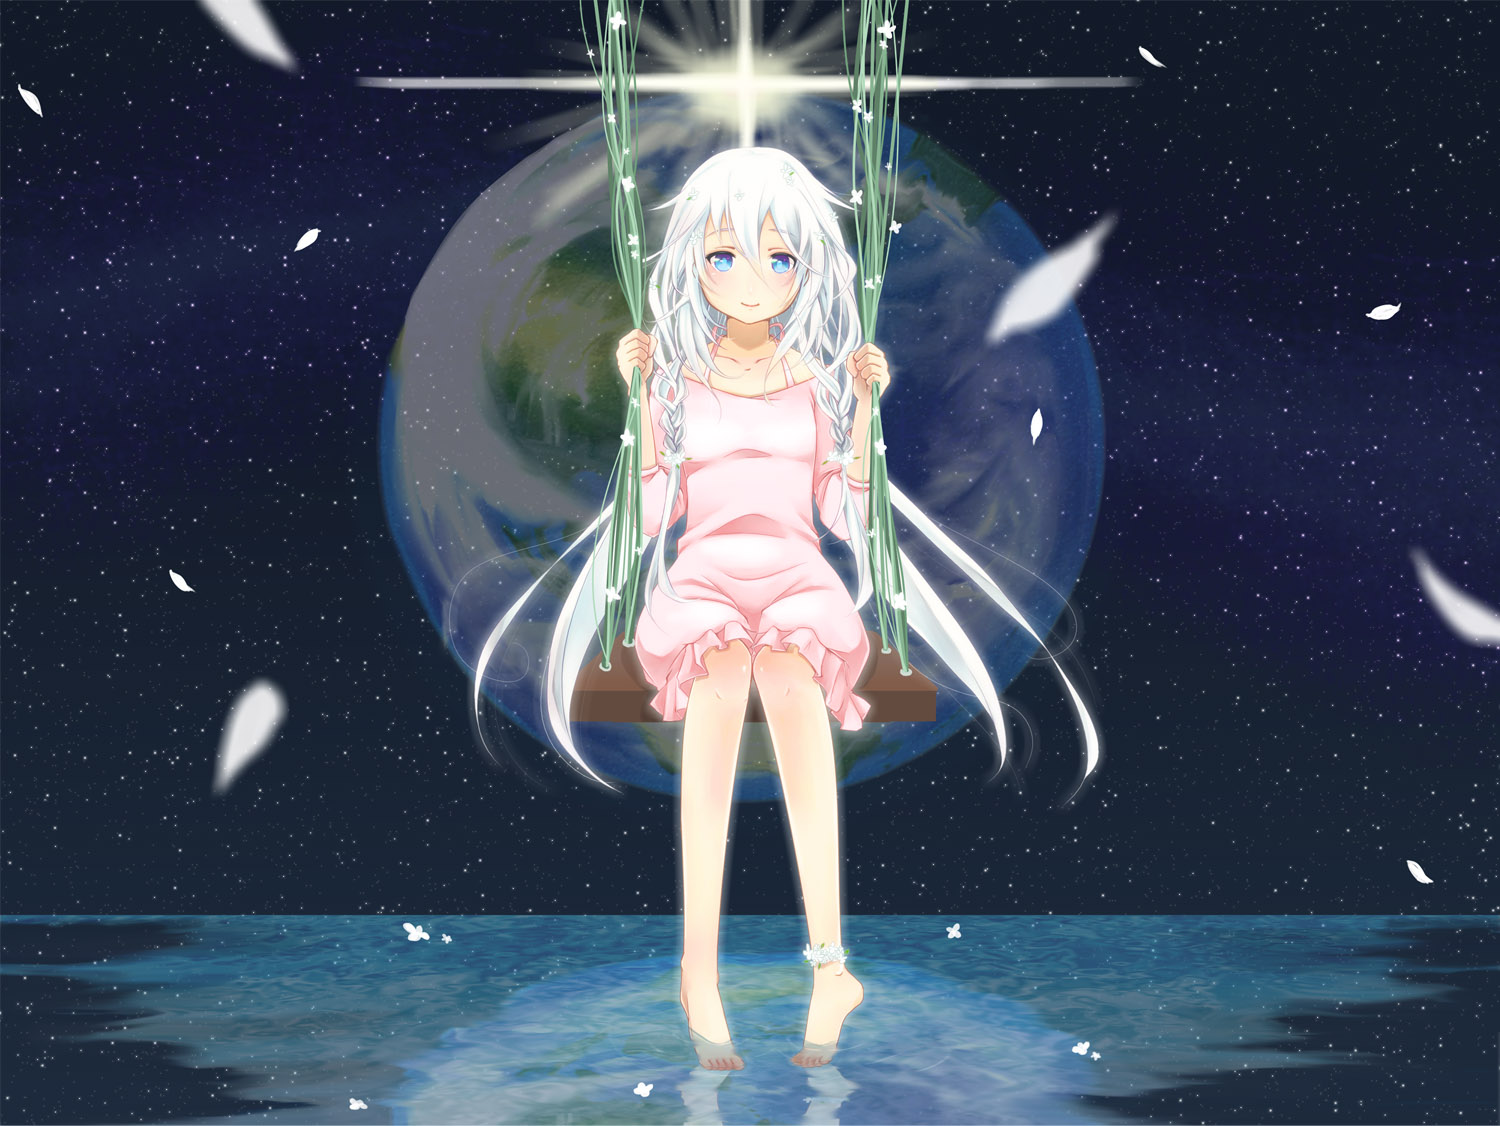 barefoot earth ia jpeg_artifacts nokko stars vocaloid water